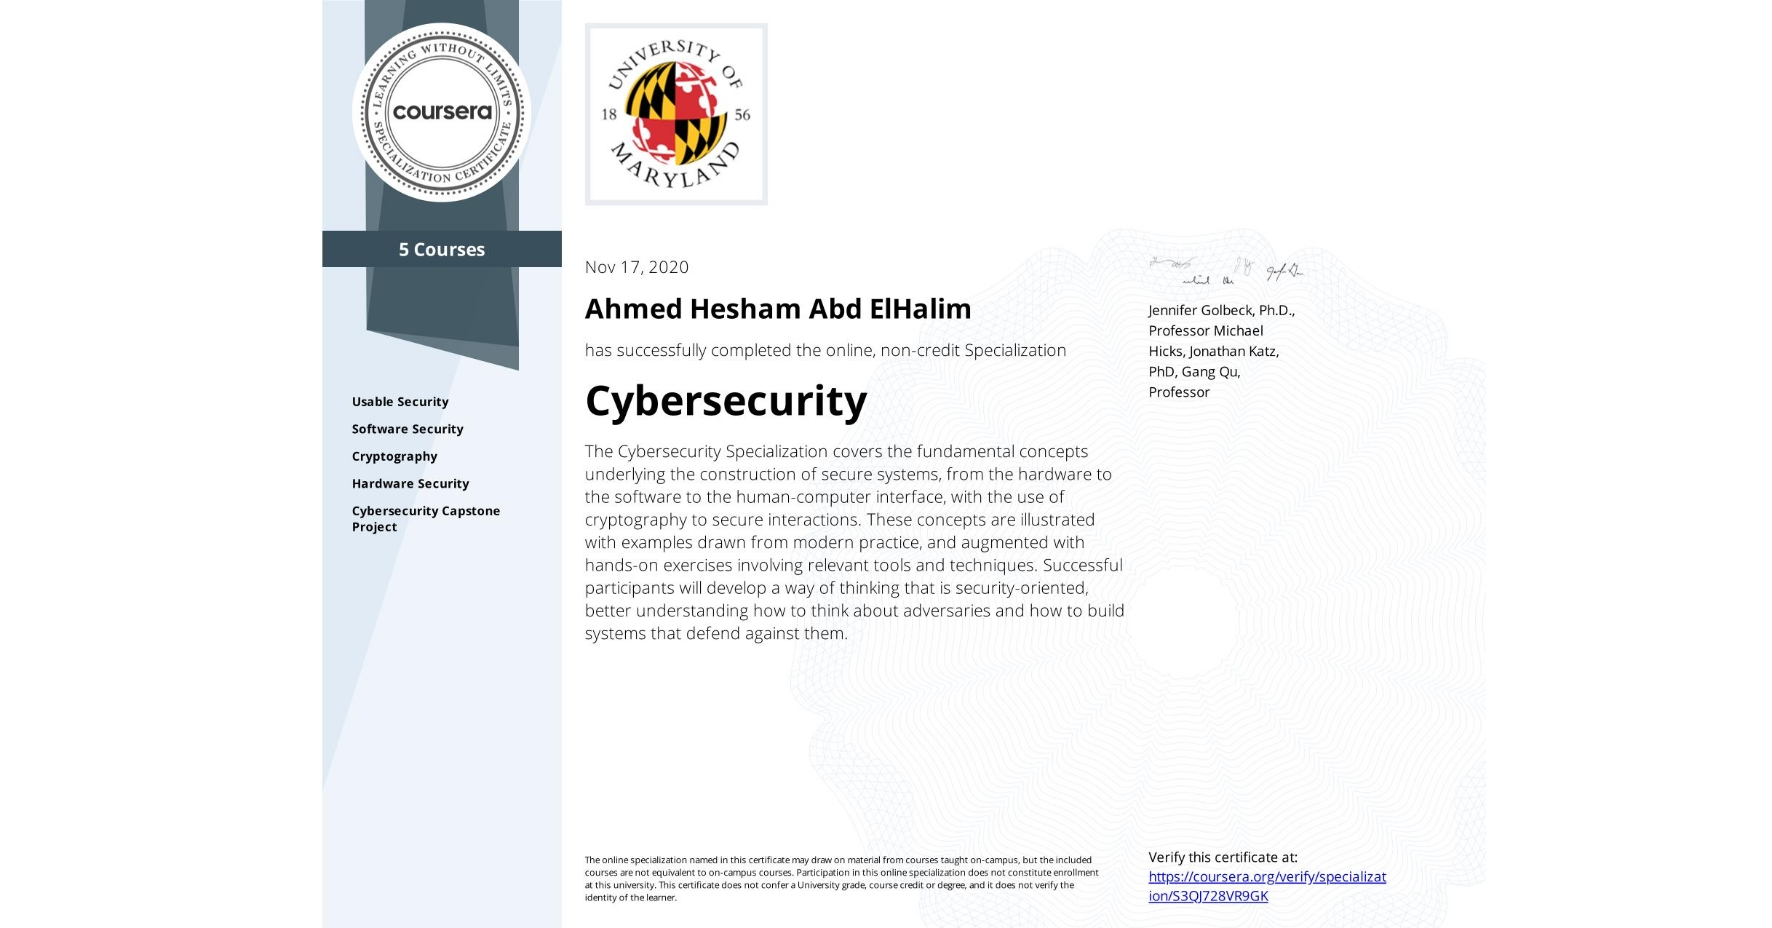 View certificate for Ahmed Hesham Abd ElHalim, Cybersecurity, offered through Coursera. The Cybersecurity Specialization covers the fundamental concepts underlying the construction of secure systems, from the hardware to the software to the human-computer interface, with the use of cryptography to secure interactions. These concepts are illustrated with examples drawn from modern practice, and augmented with hands-on exercises involving relevant tools and techniques. Successful participants will develop a way of thinking that is security-oriented, better understanding how to think about adversaries and how to build systems that defend against them.